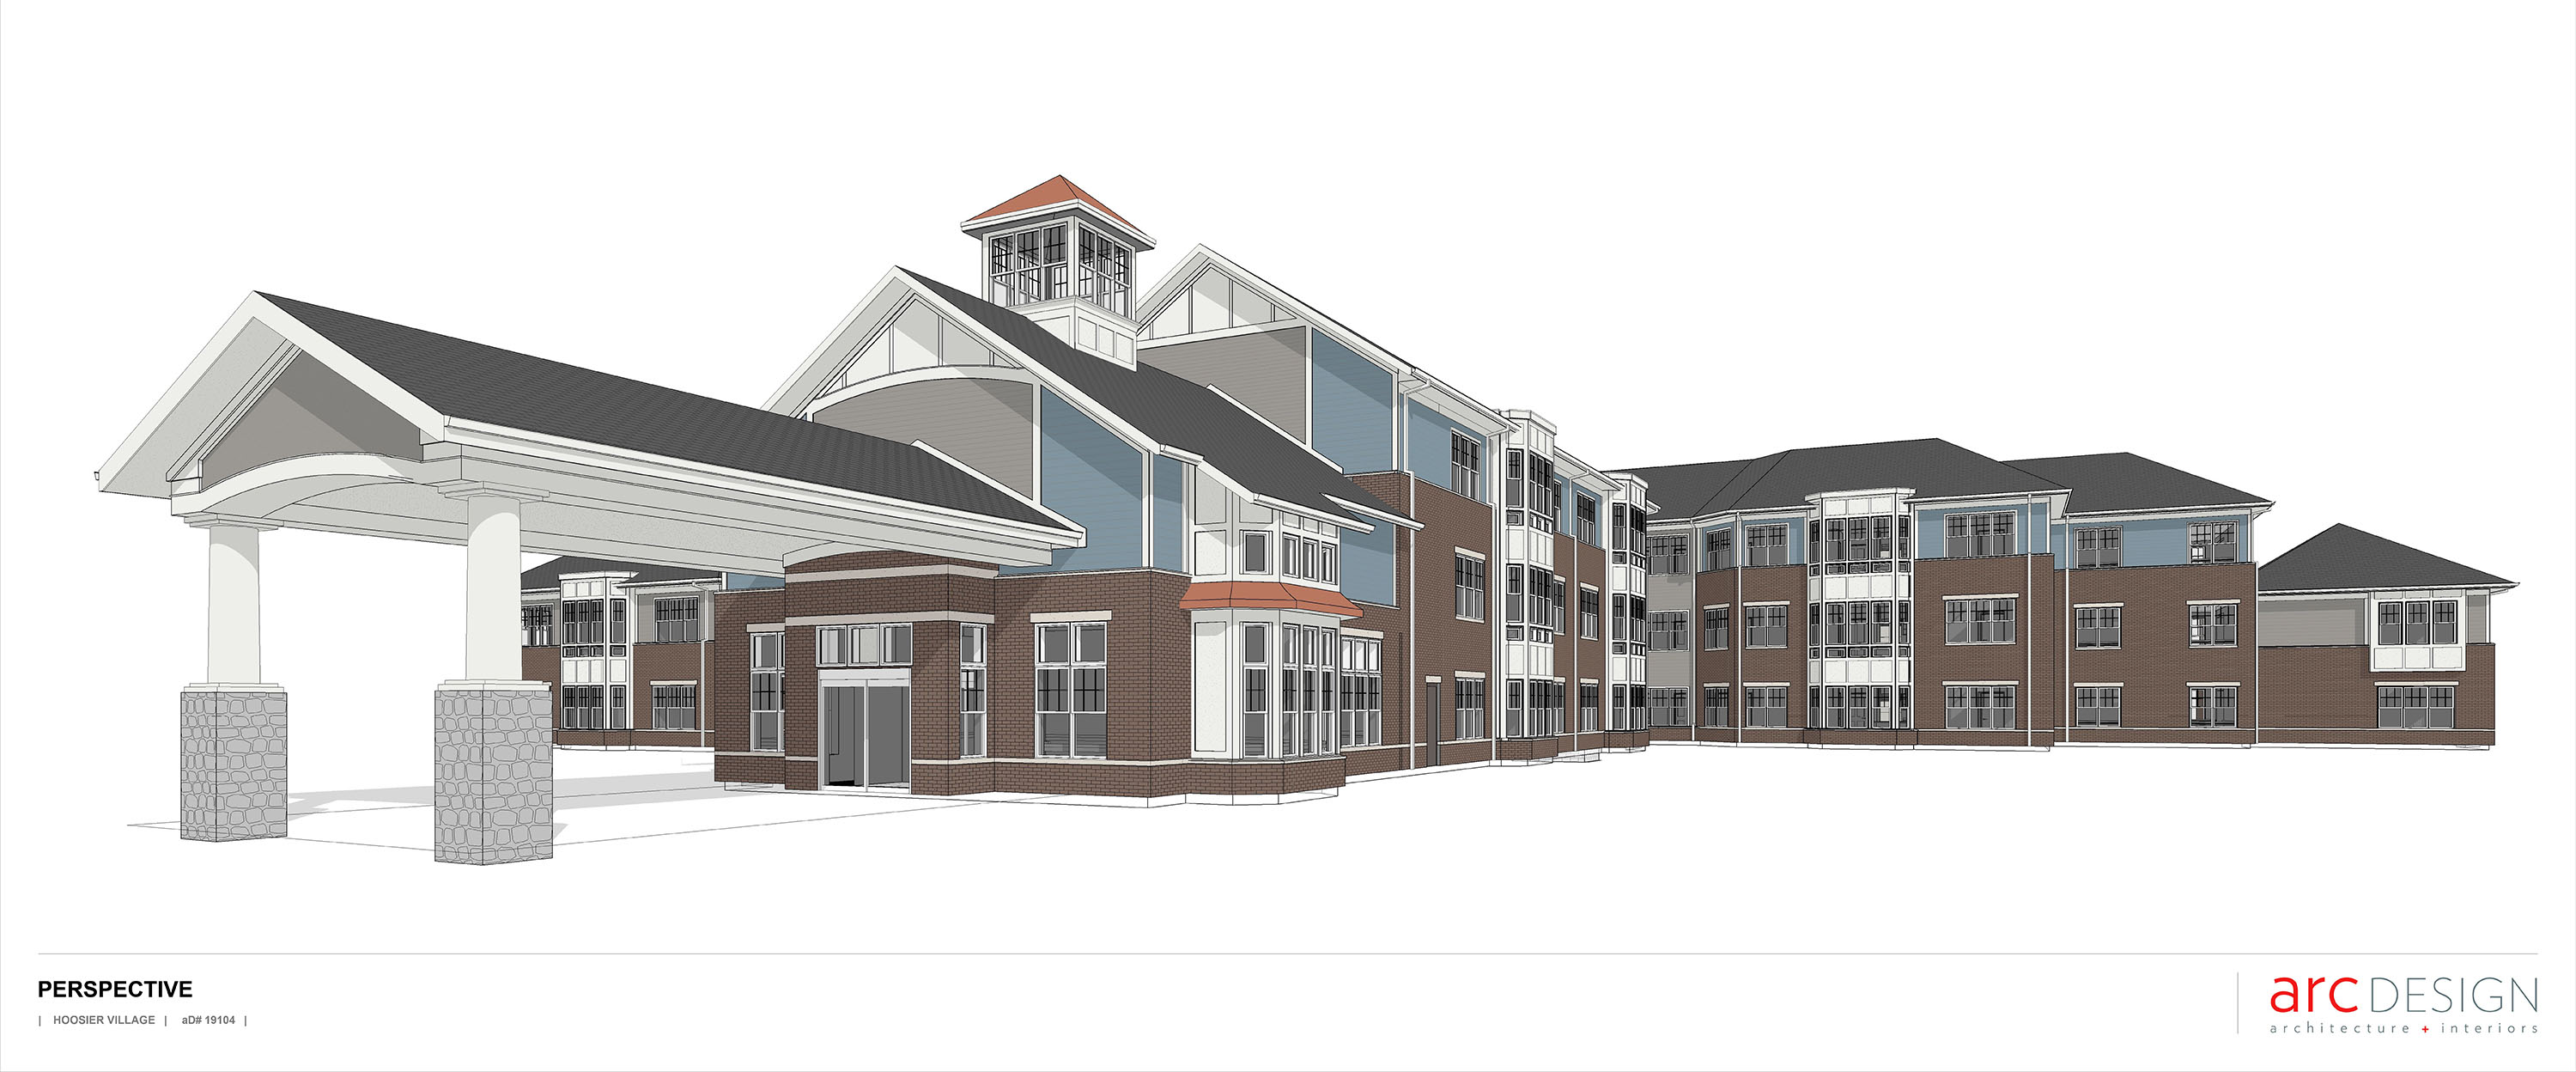 Digital rendition of The Cedarwood addition that is currently under construction